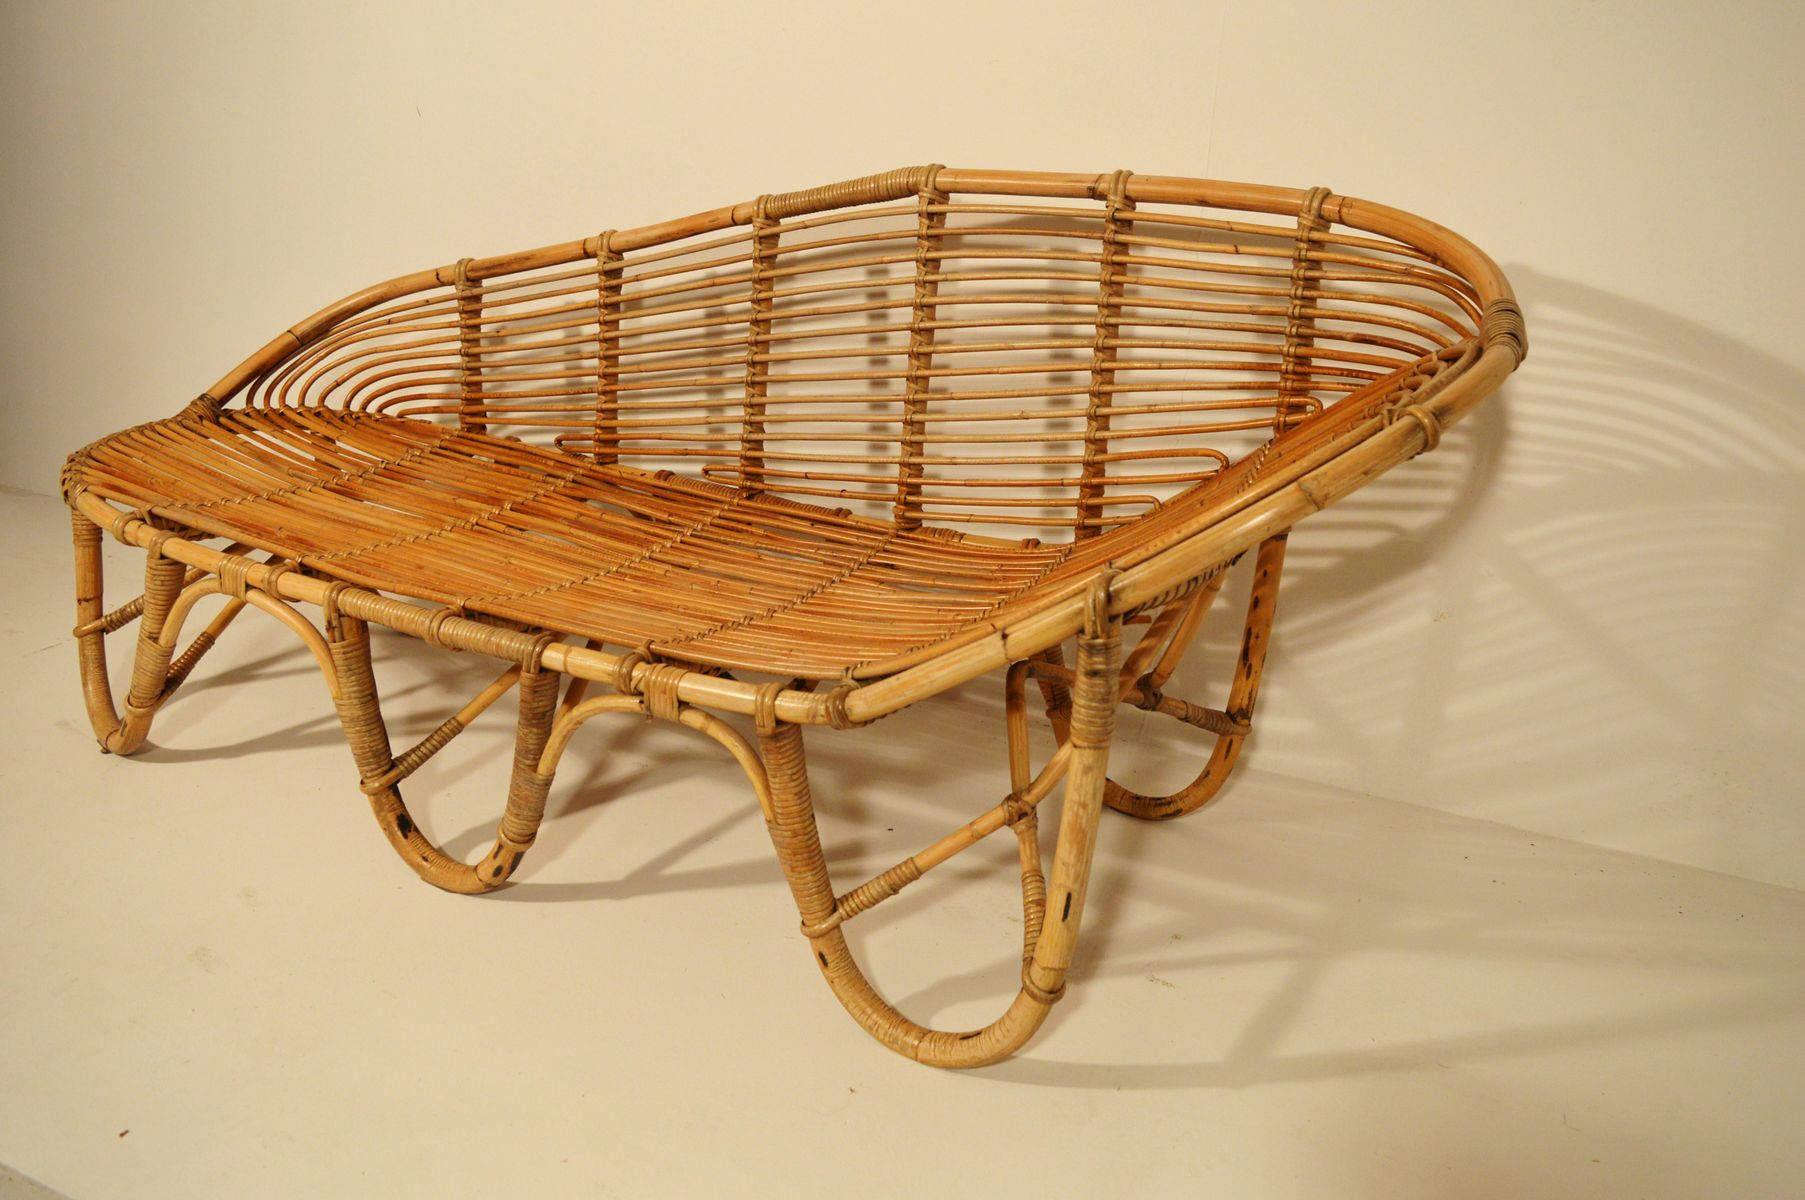 midcentury bamboo bench for sale at pamono - midcentury bamboo bench   price per piece